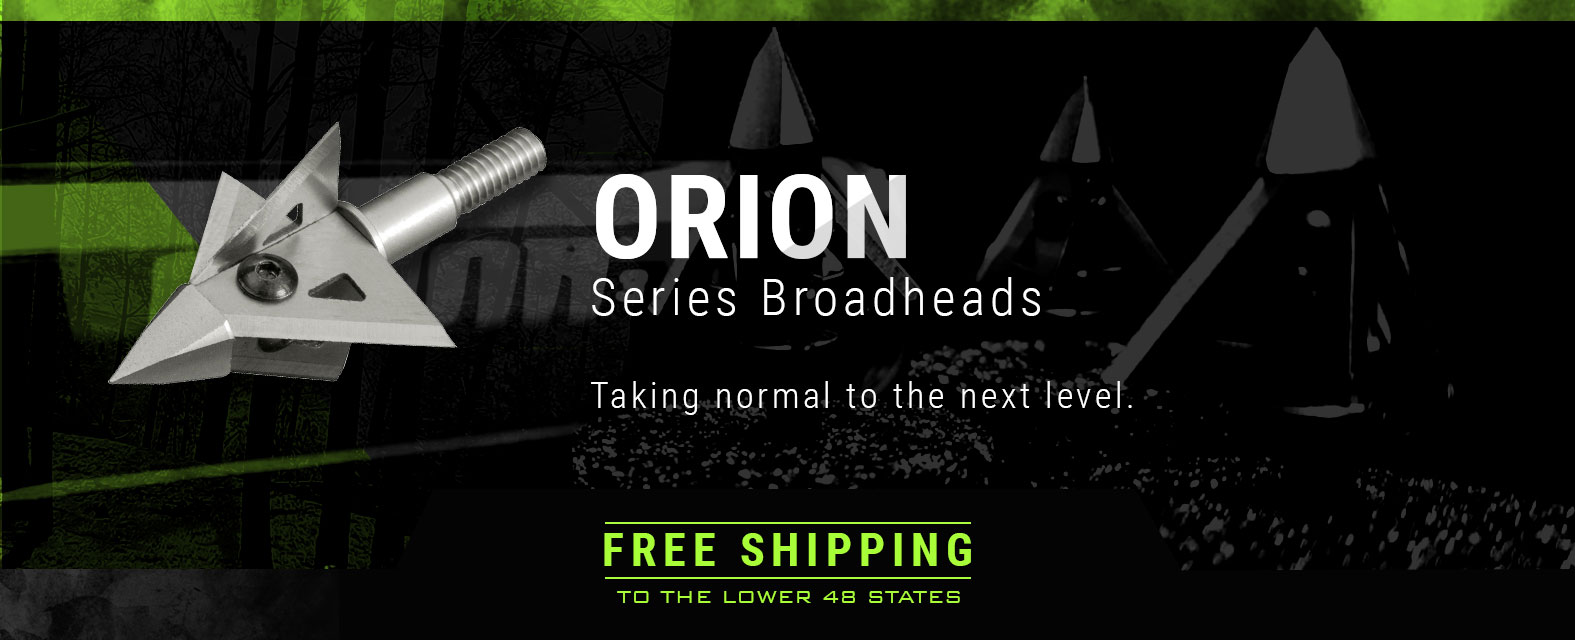 ORION - Taking normal to the next level